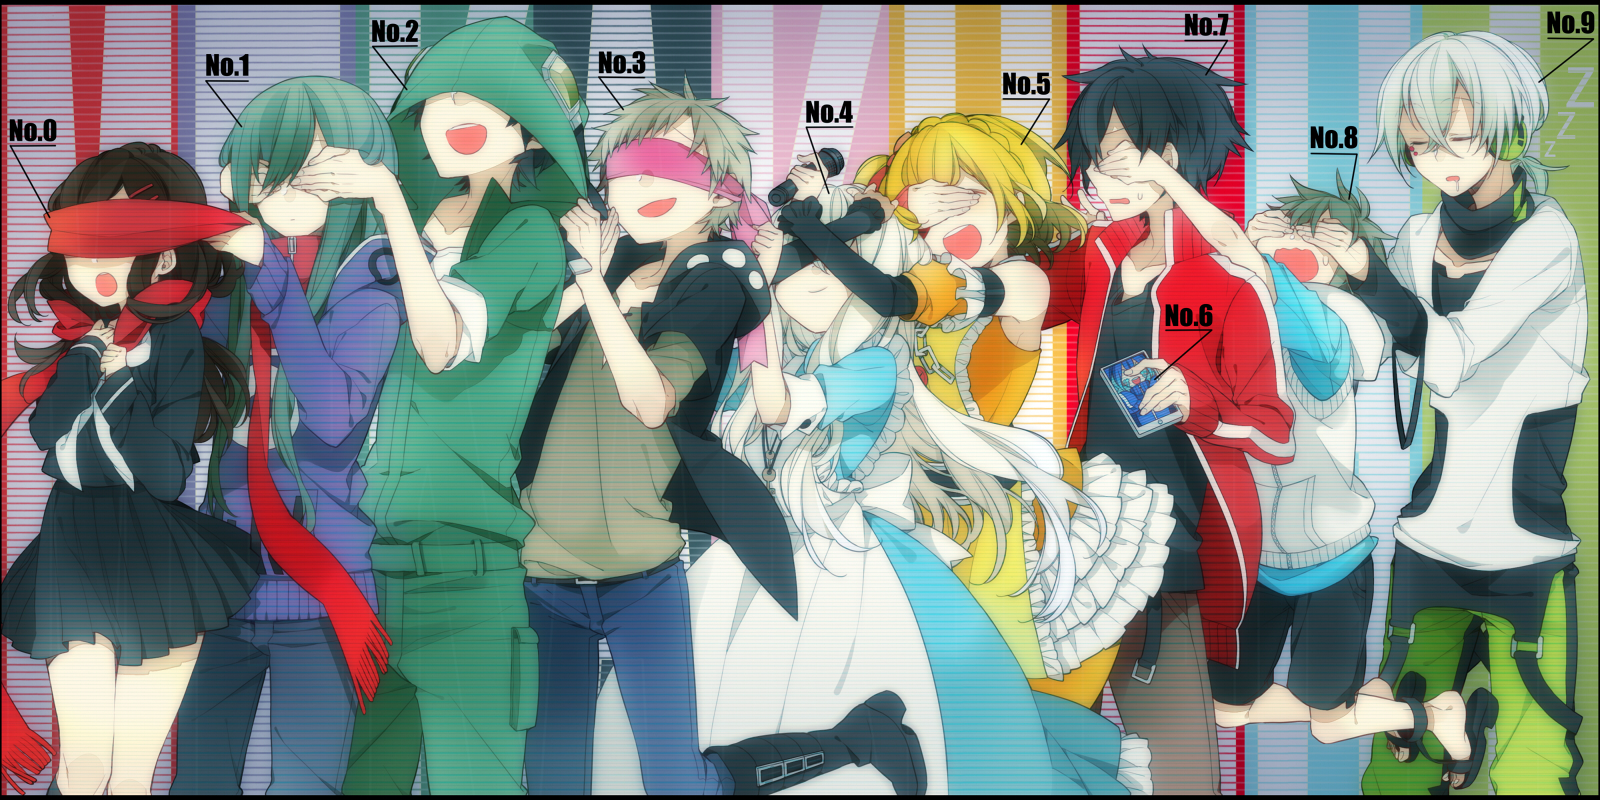 Mekakushi Dan - Kagerou Project Wallpaper (36996268) - Fanpop - Page 2